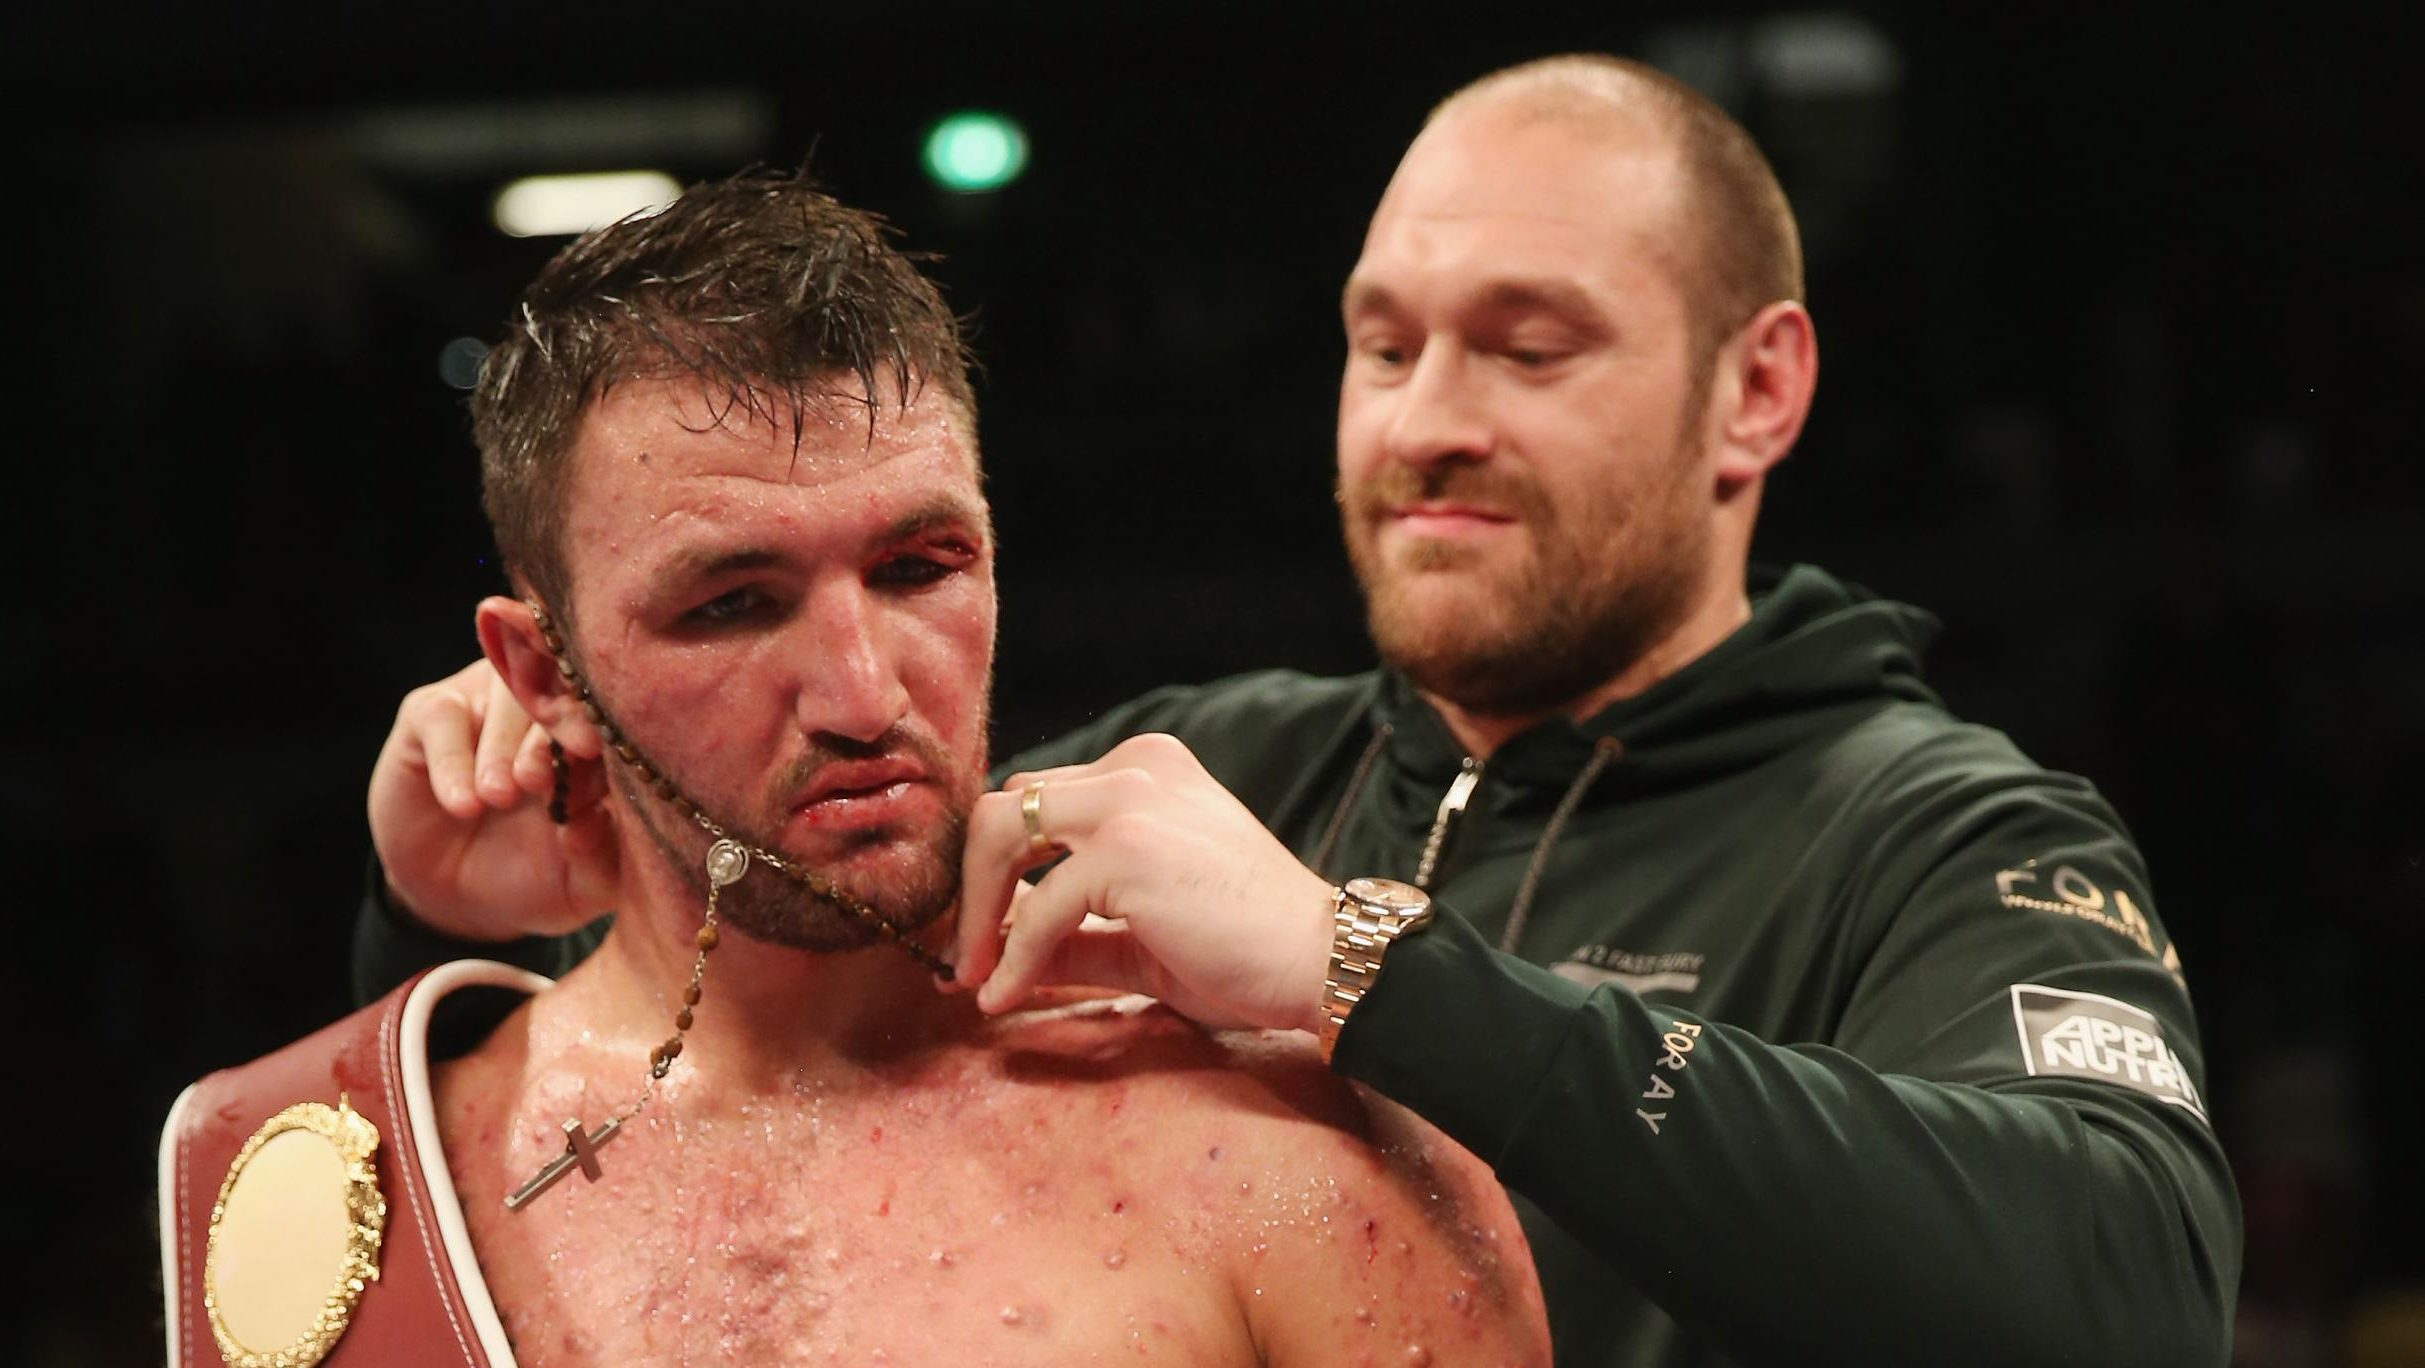 hughie fury believes he beat parker